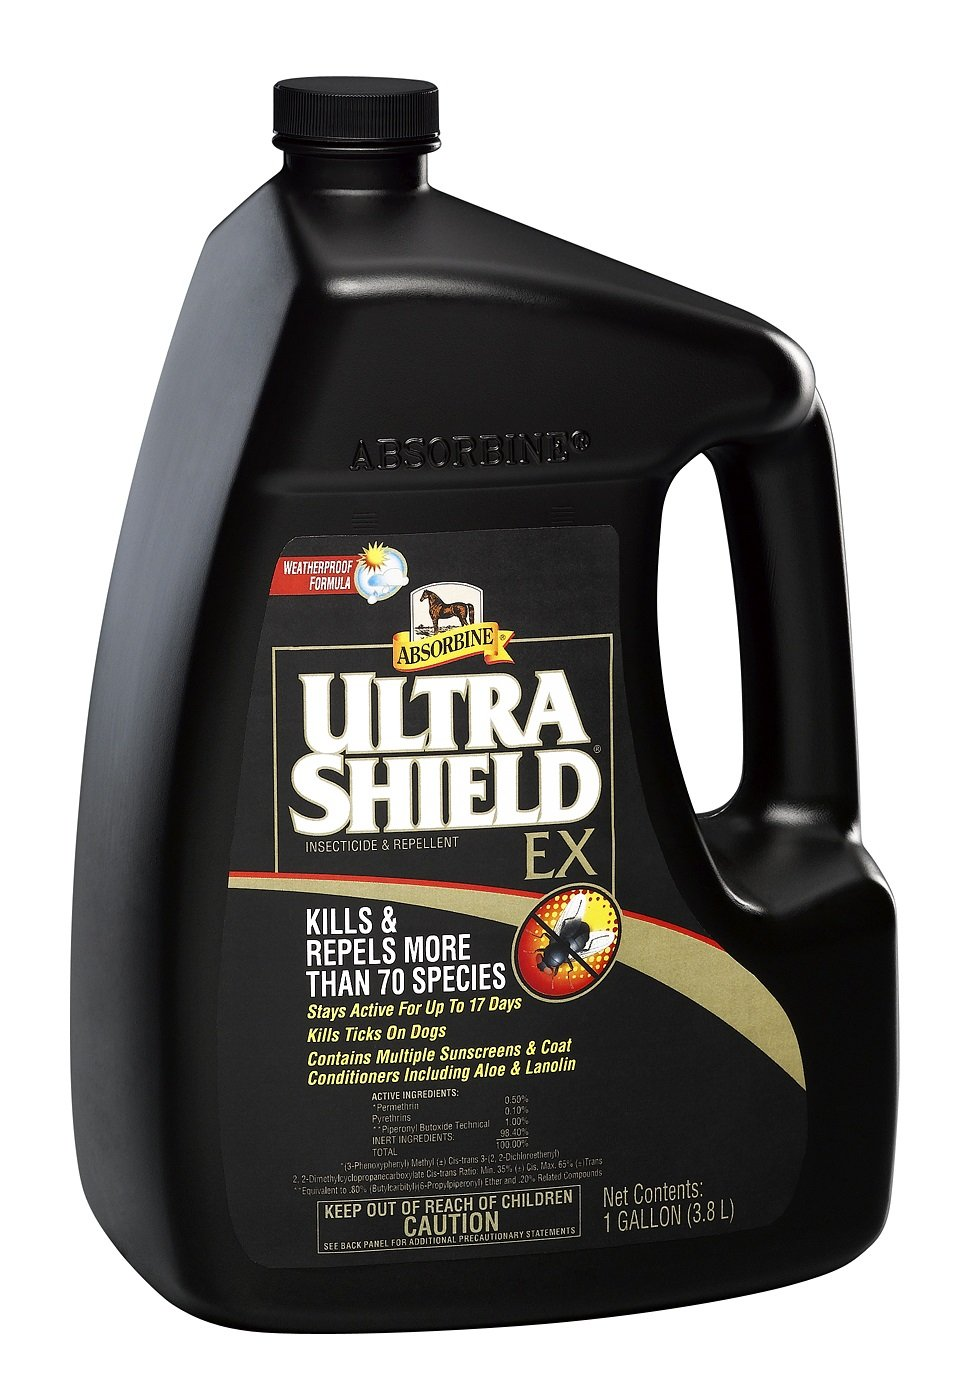 Absorbine 1 Gallon Ultra Shield EX Kills and Repels More Than 70 Species ! Weatherproof Formula by Absorbine